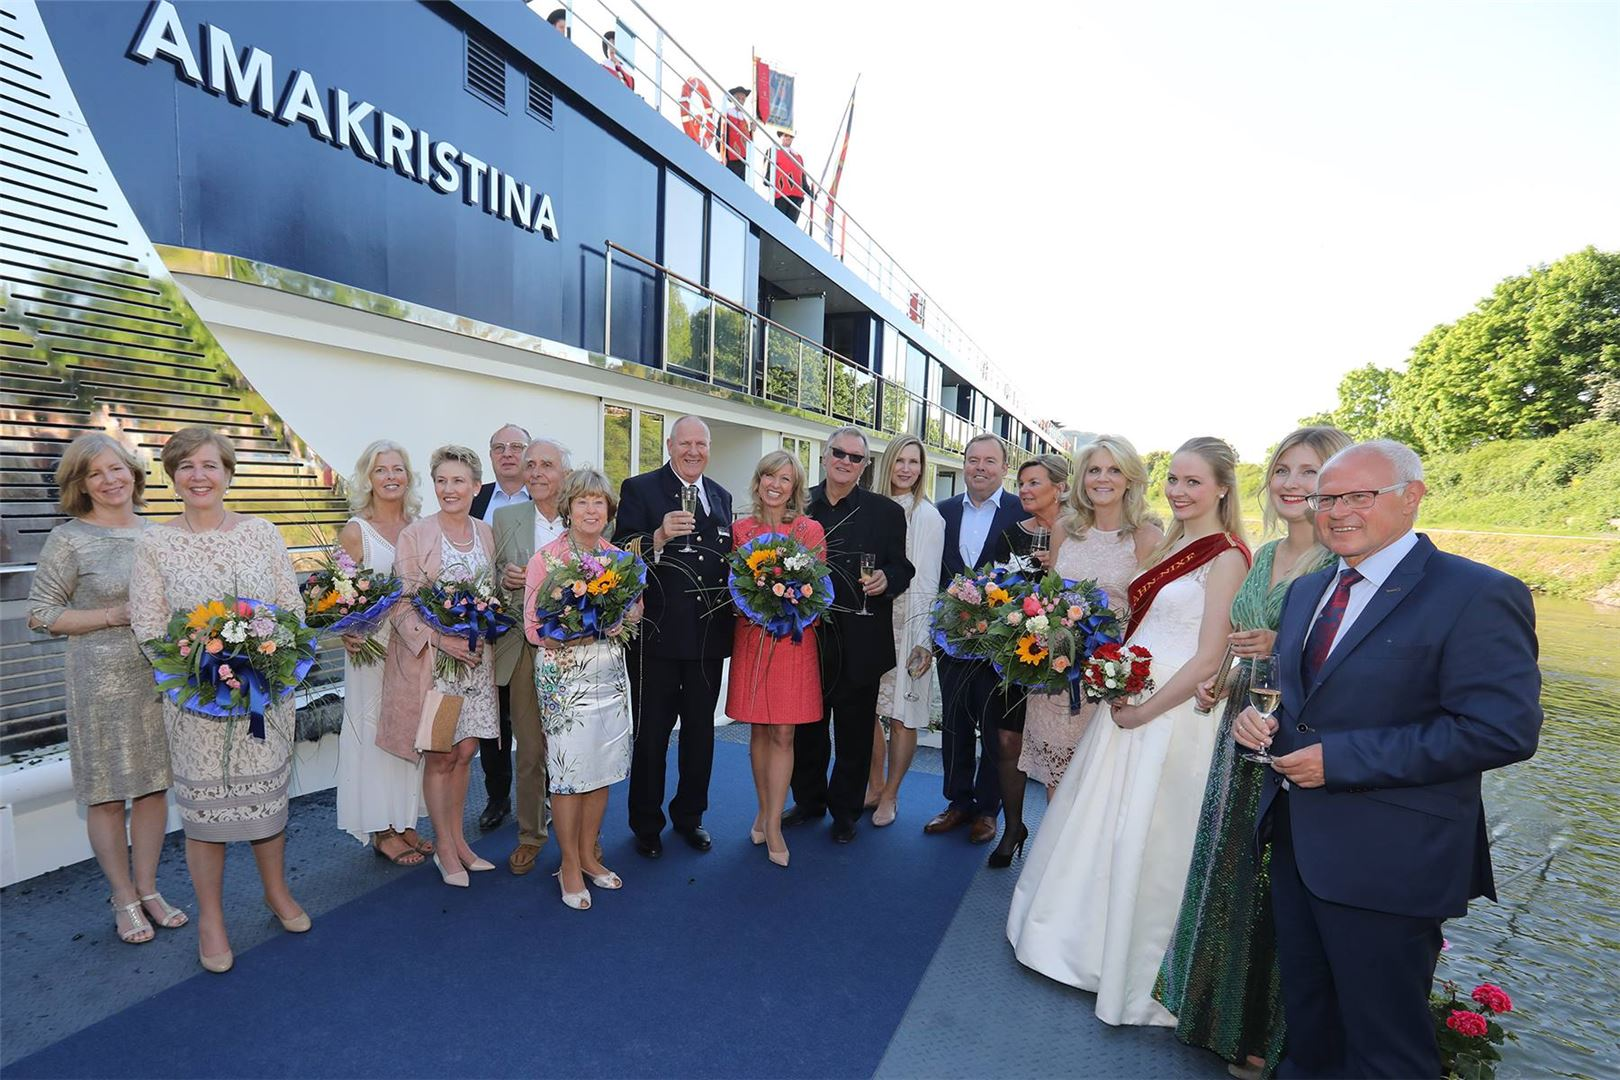 AmaWaterways Christens AmaKristina In Germany